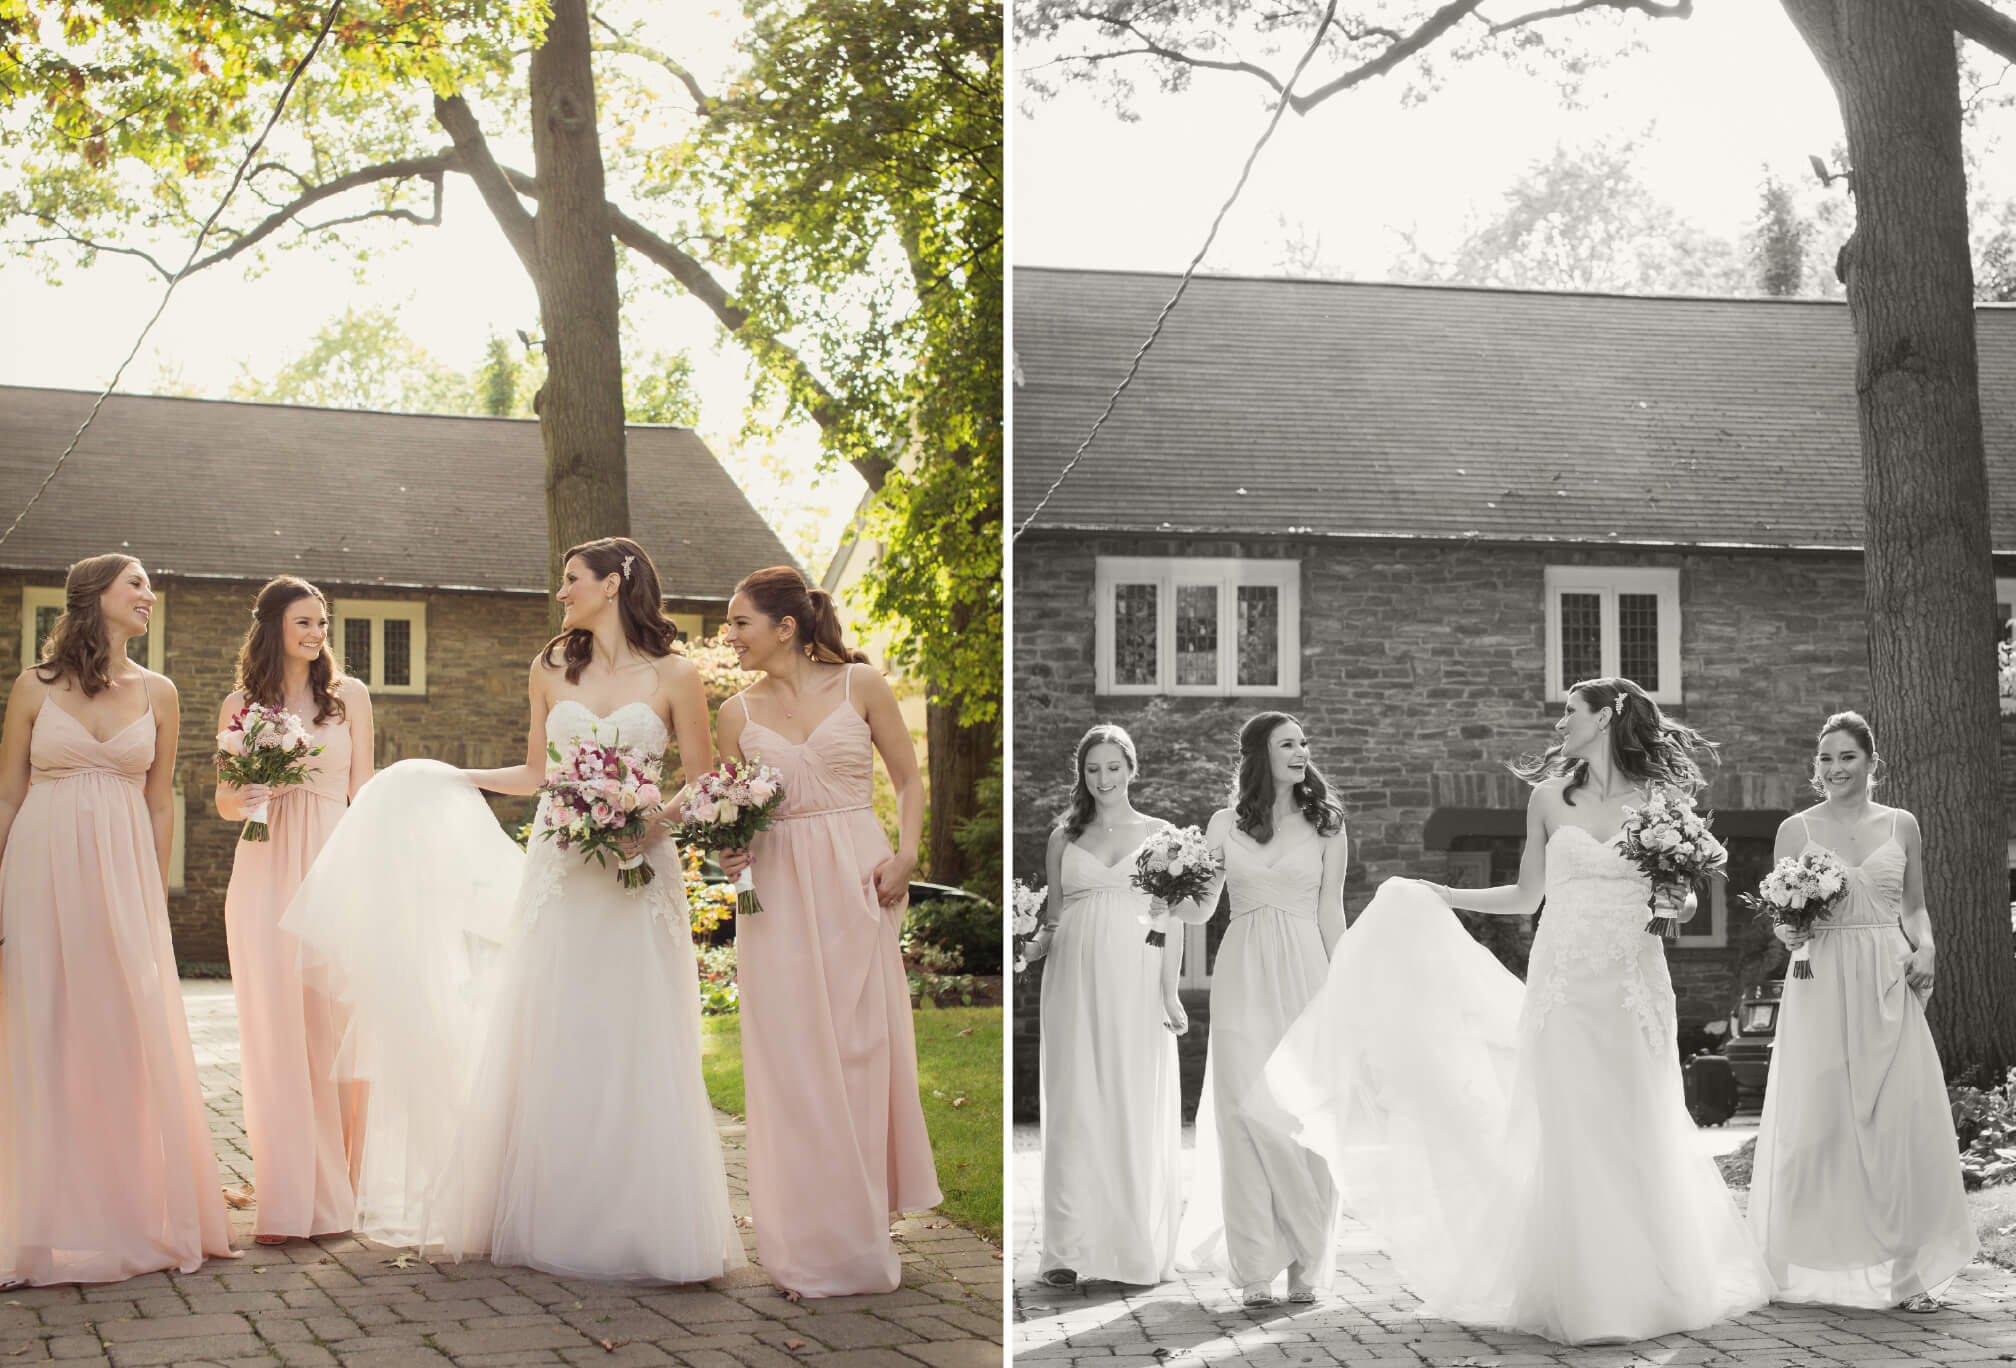 bride and bridesmaids leaving house